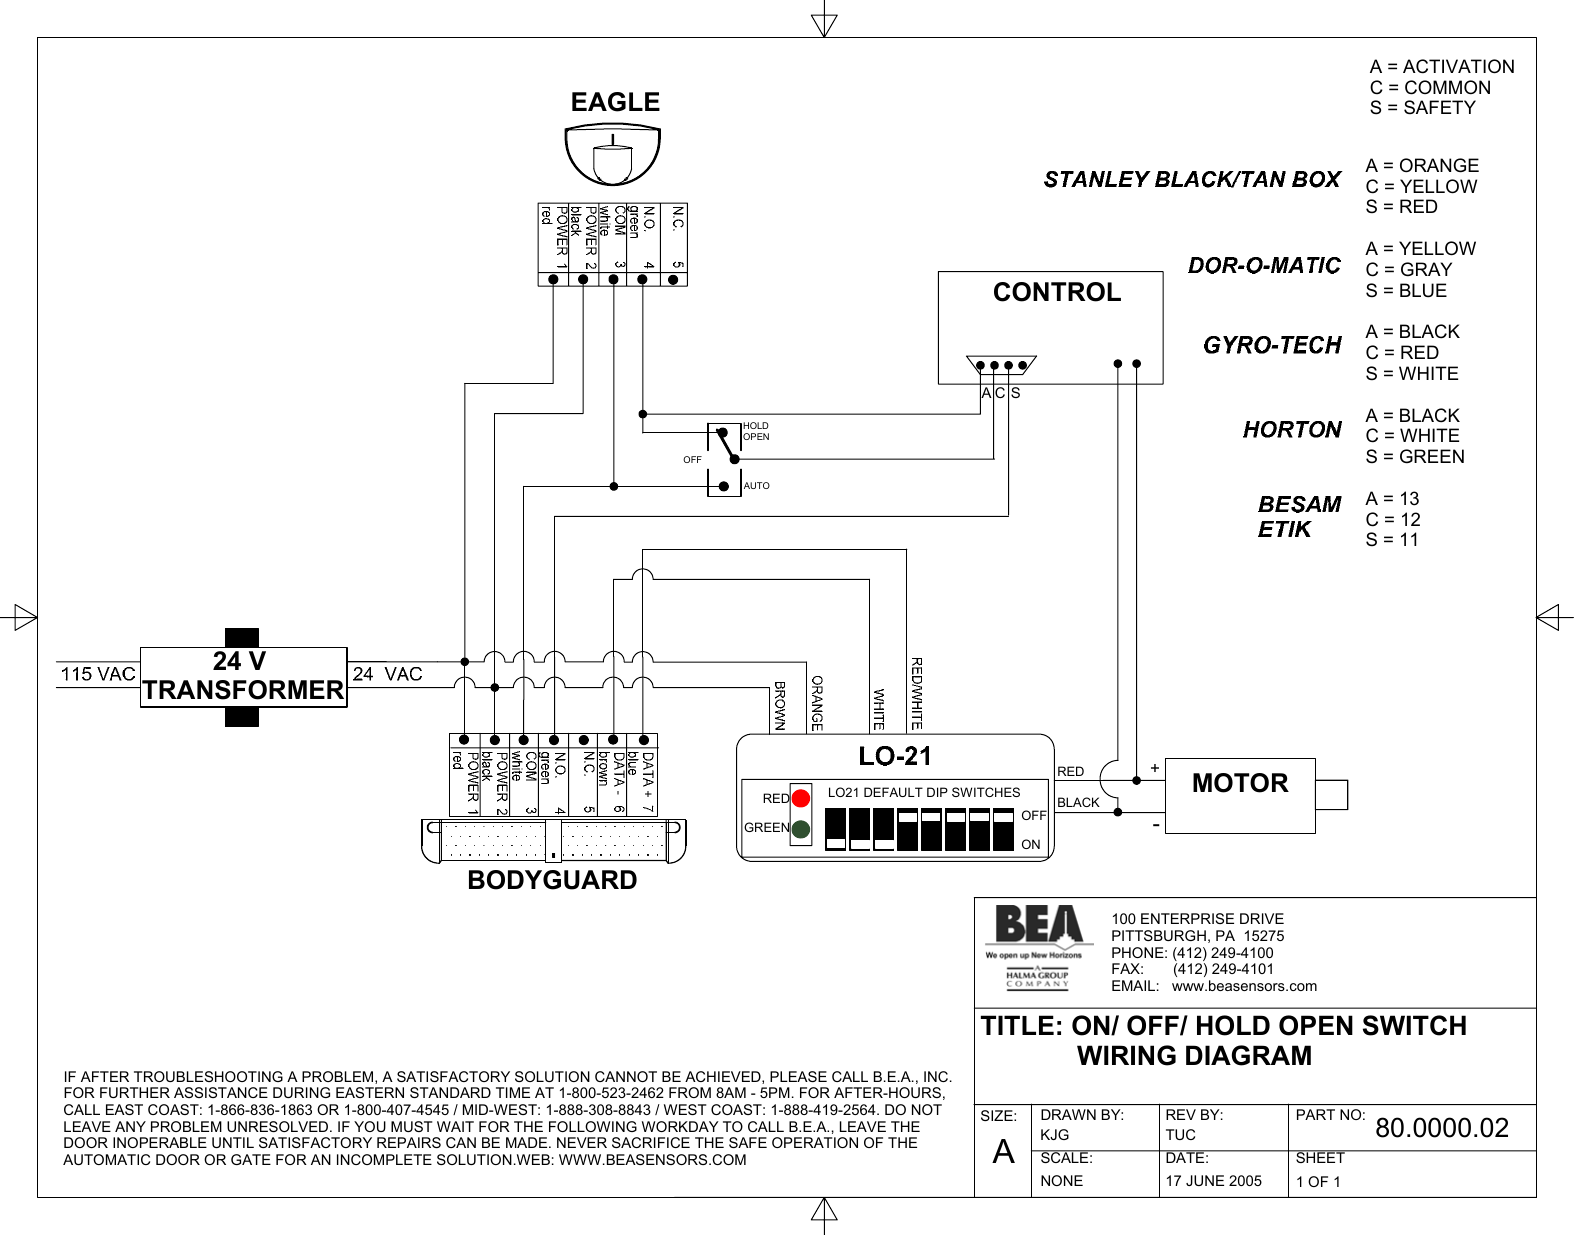 Diagram Gy 6874 Electromagnetic Lock Wiring Diagram Ga Single